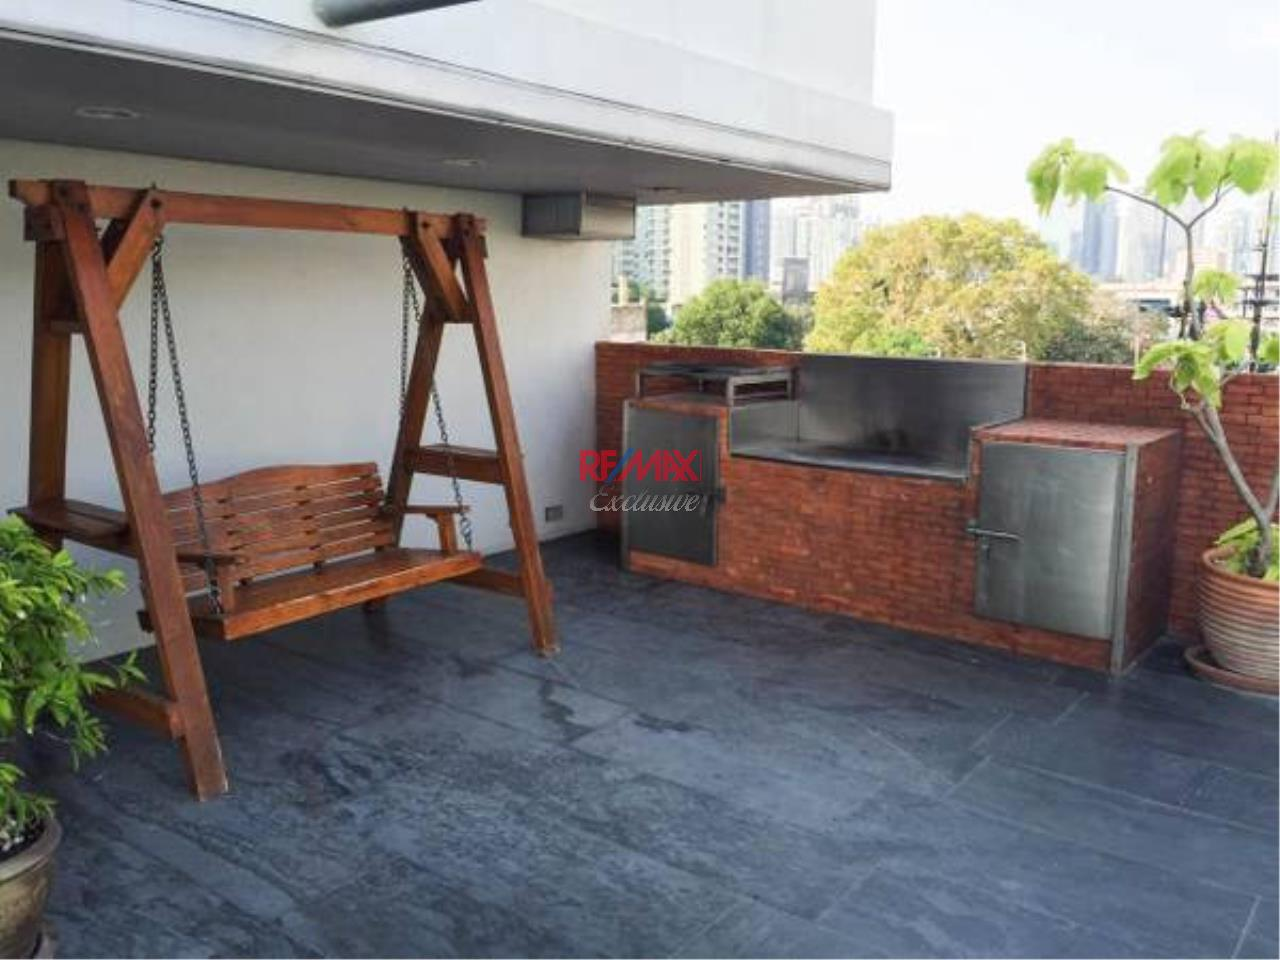 RE/MAX Exclusive Agency's Baan Saran 1 Bedroom Big Size for sale Good Price 4200000 THB 17